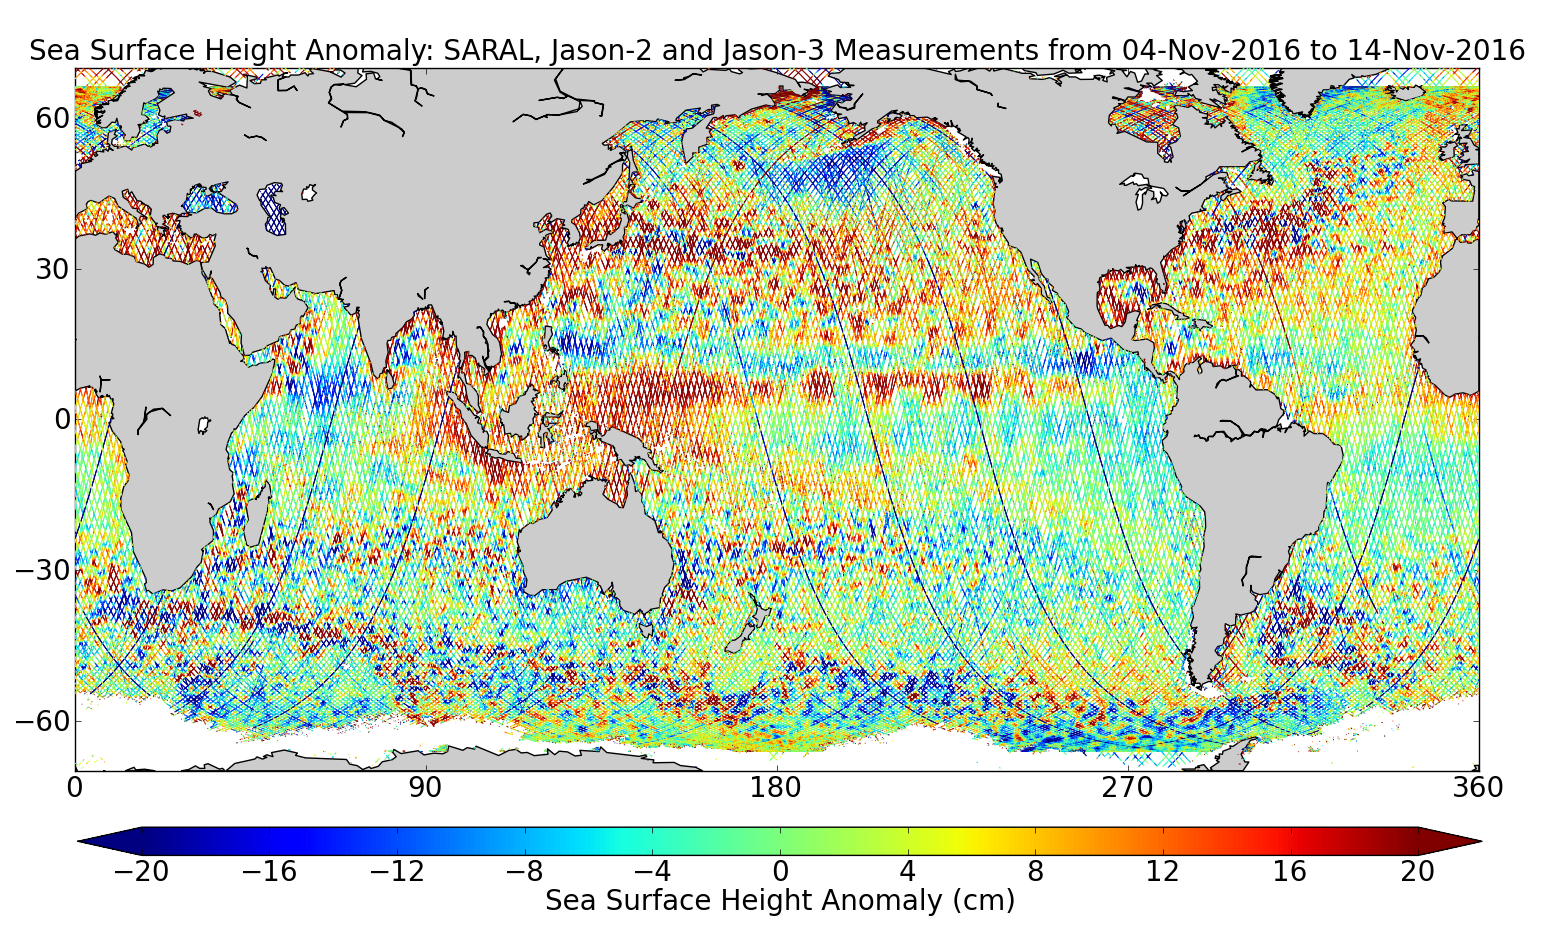 Sea Surface Height Anomaly: SARAL, Jason-2 and Jason-3 Measurements from 04-Nov-2016 to 14-Nov-2016